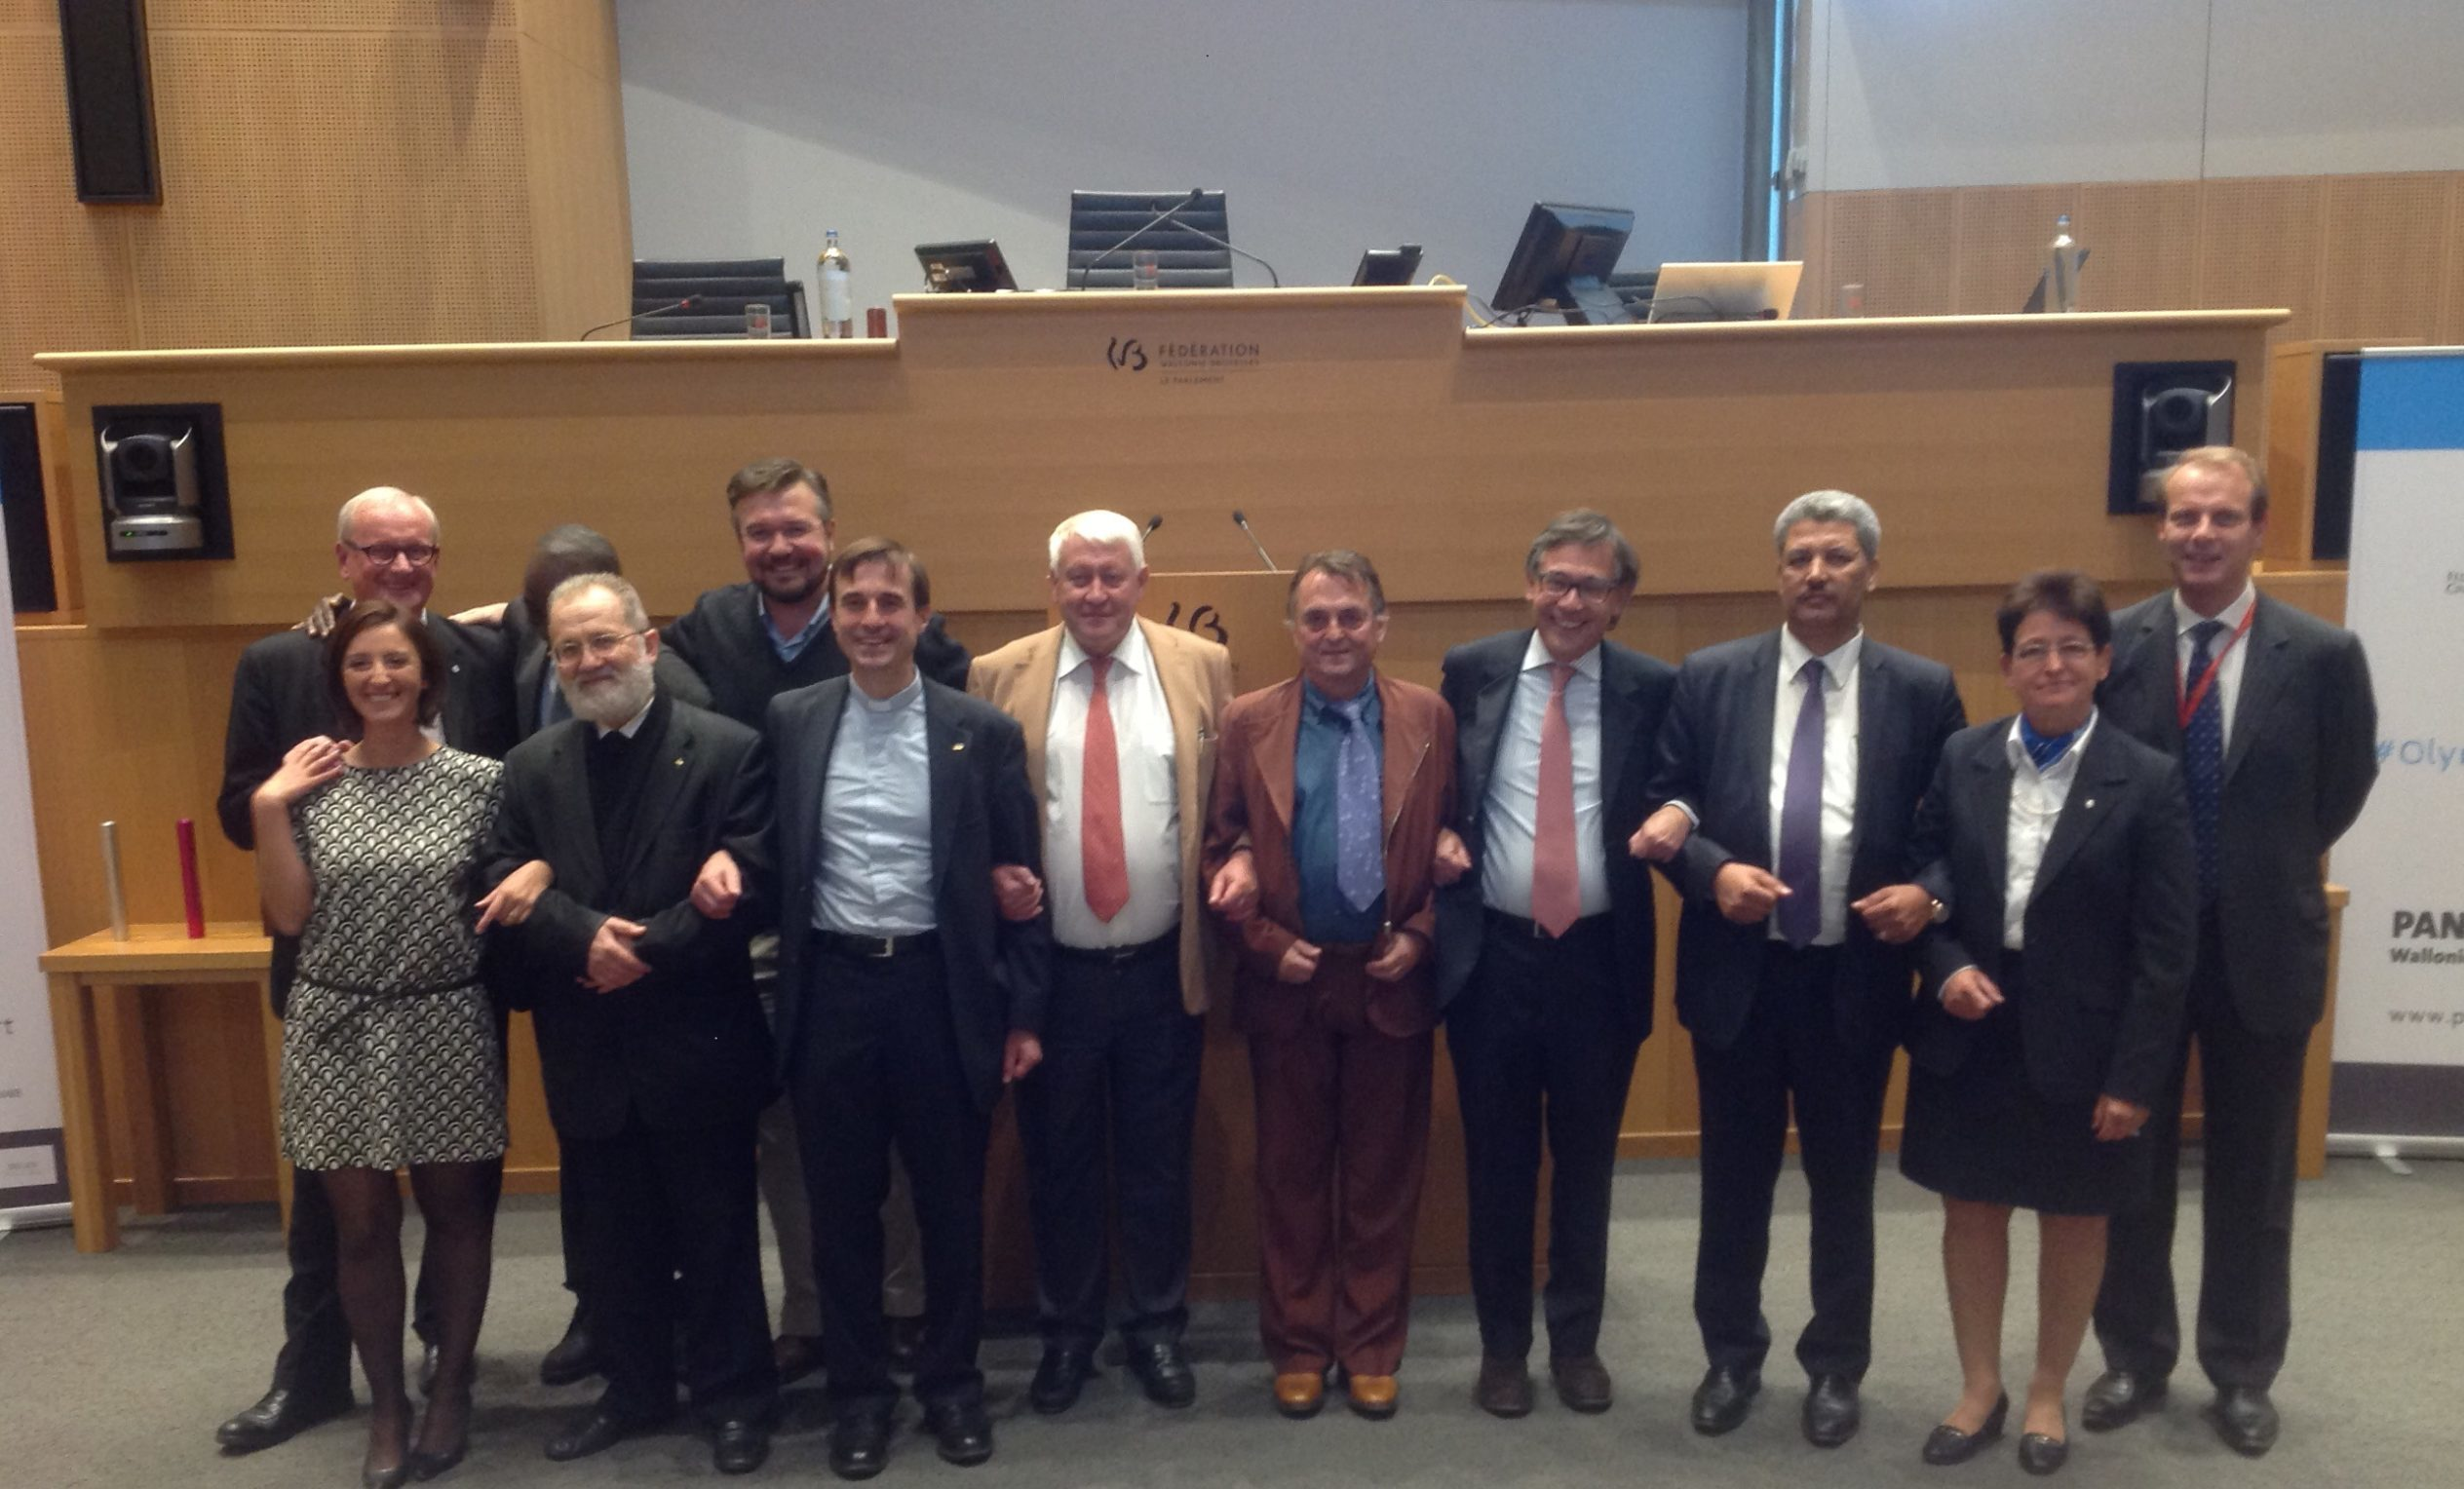 The representatives of Belgium's recognised religions, the secular movement and the Belgian sporting bodies, gathered on 6 October 2016 at the Parliament of the Wallonia-Brussels Federation